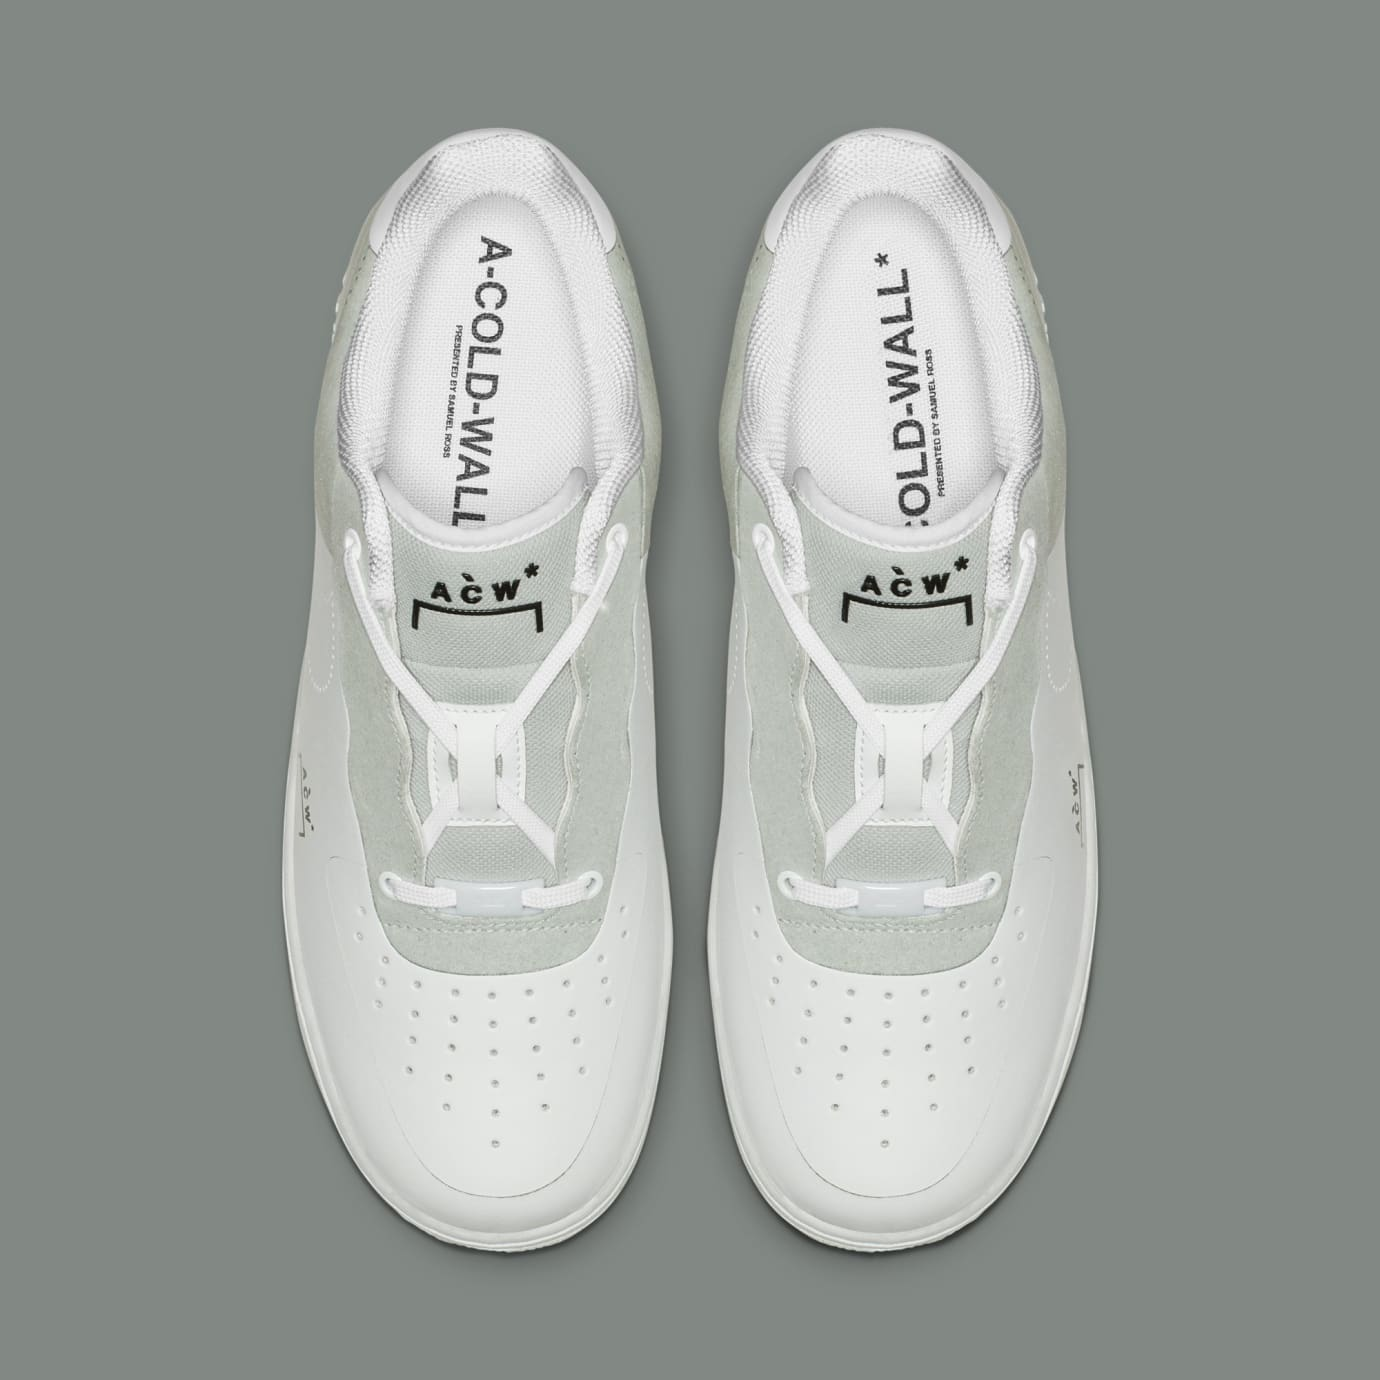 quality design c4db4 23a15 Image via Nike A-Cold-Wall x Nike Air Force 1 Low WhiteLight